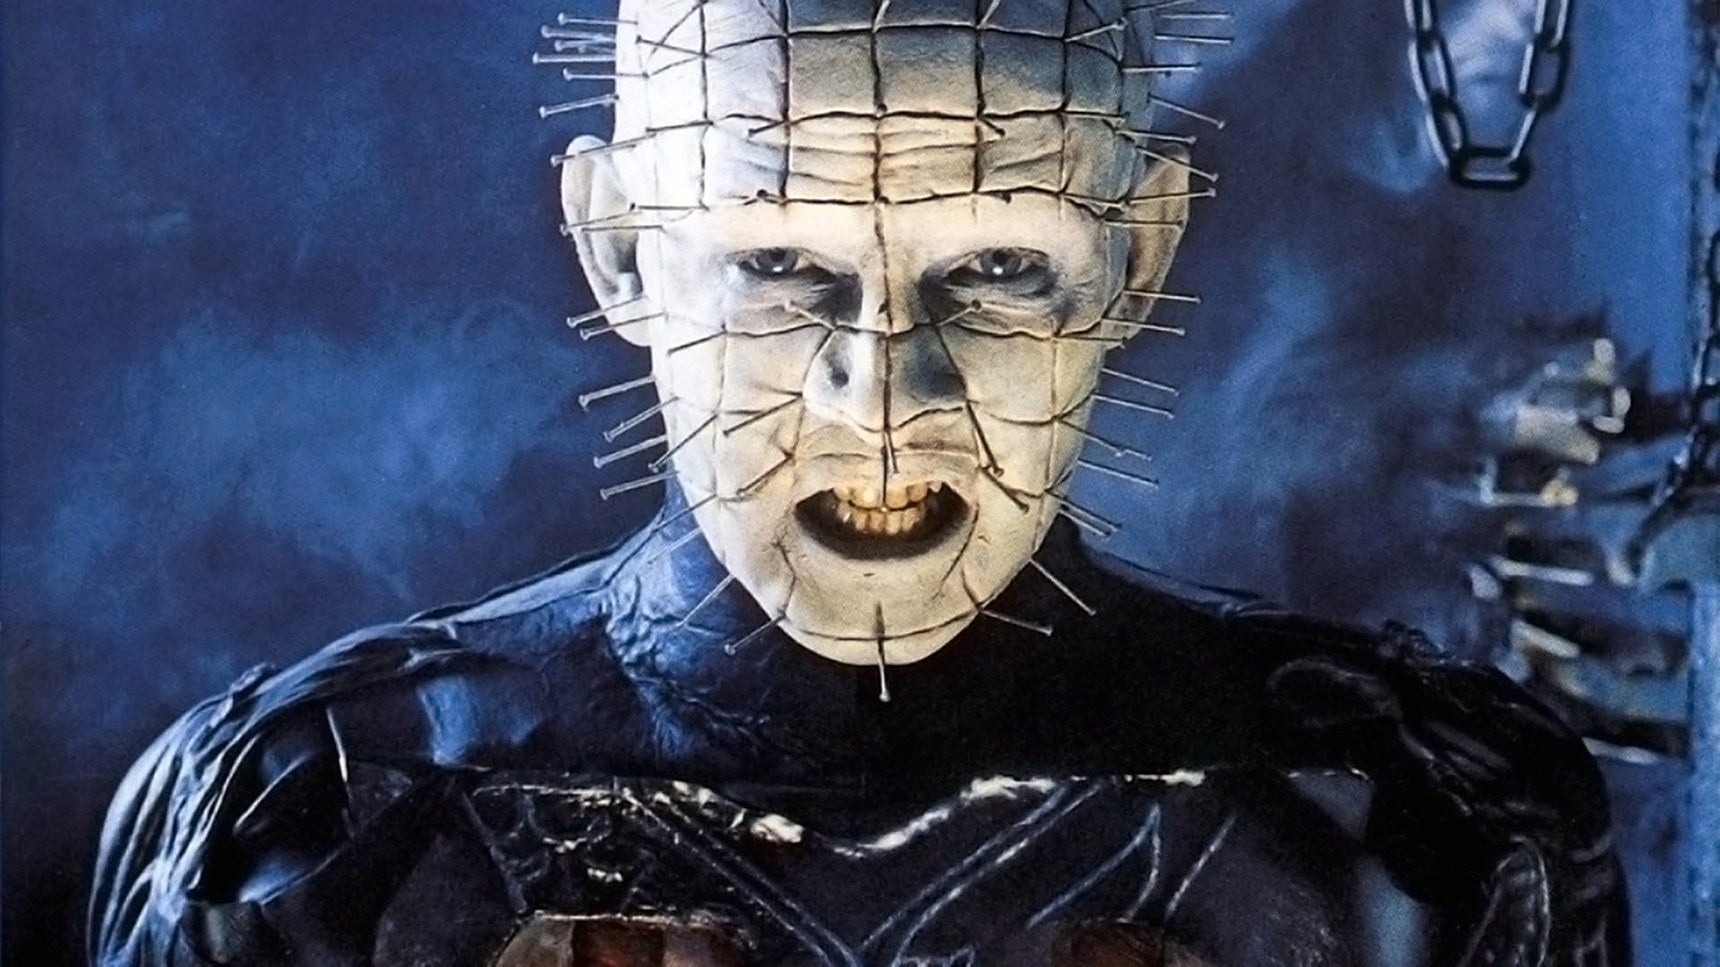 Hellraiser, Which Already Has A Movie Reboot In The Works, Now Has A TV Series On The Table Too